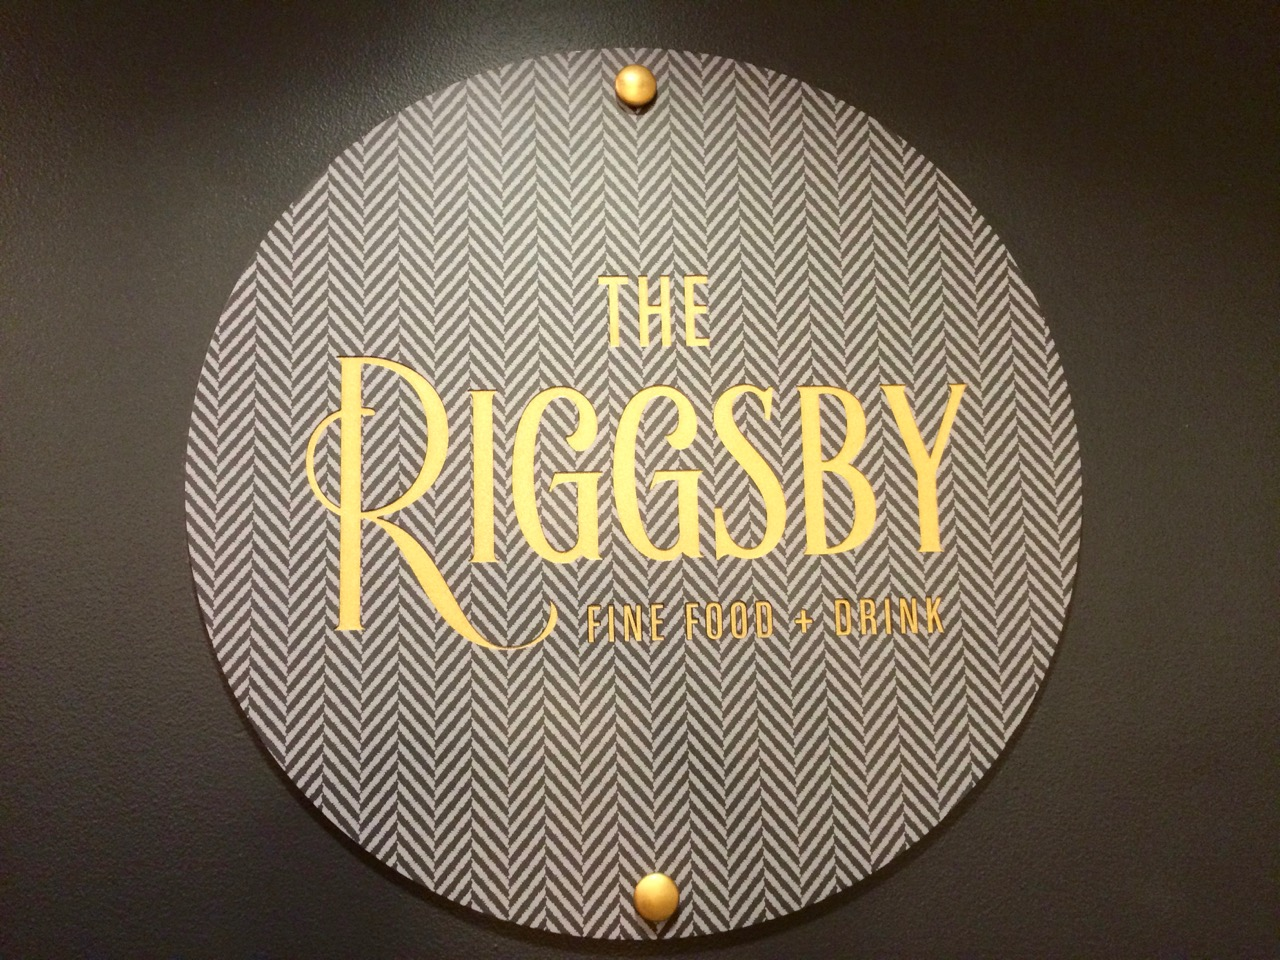 Riggsby Title.jpg